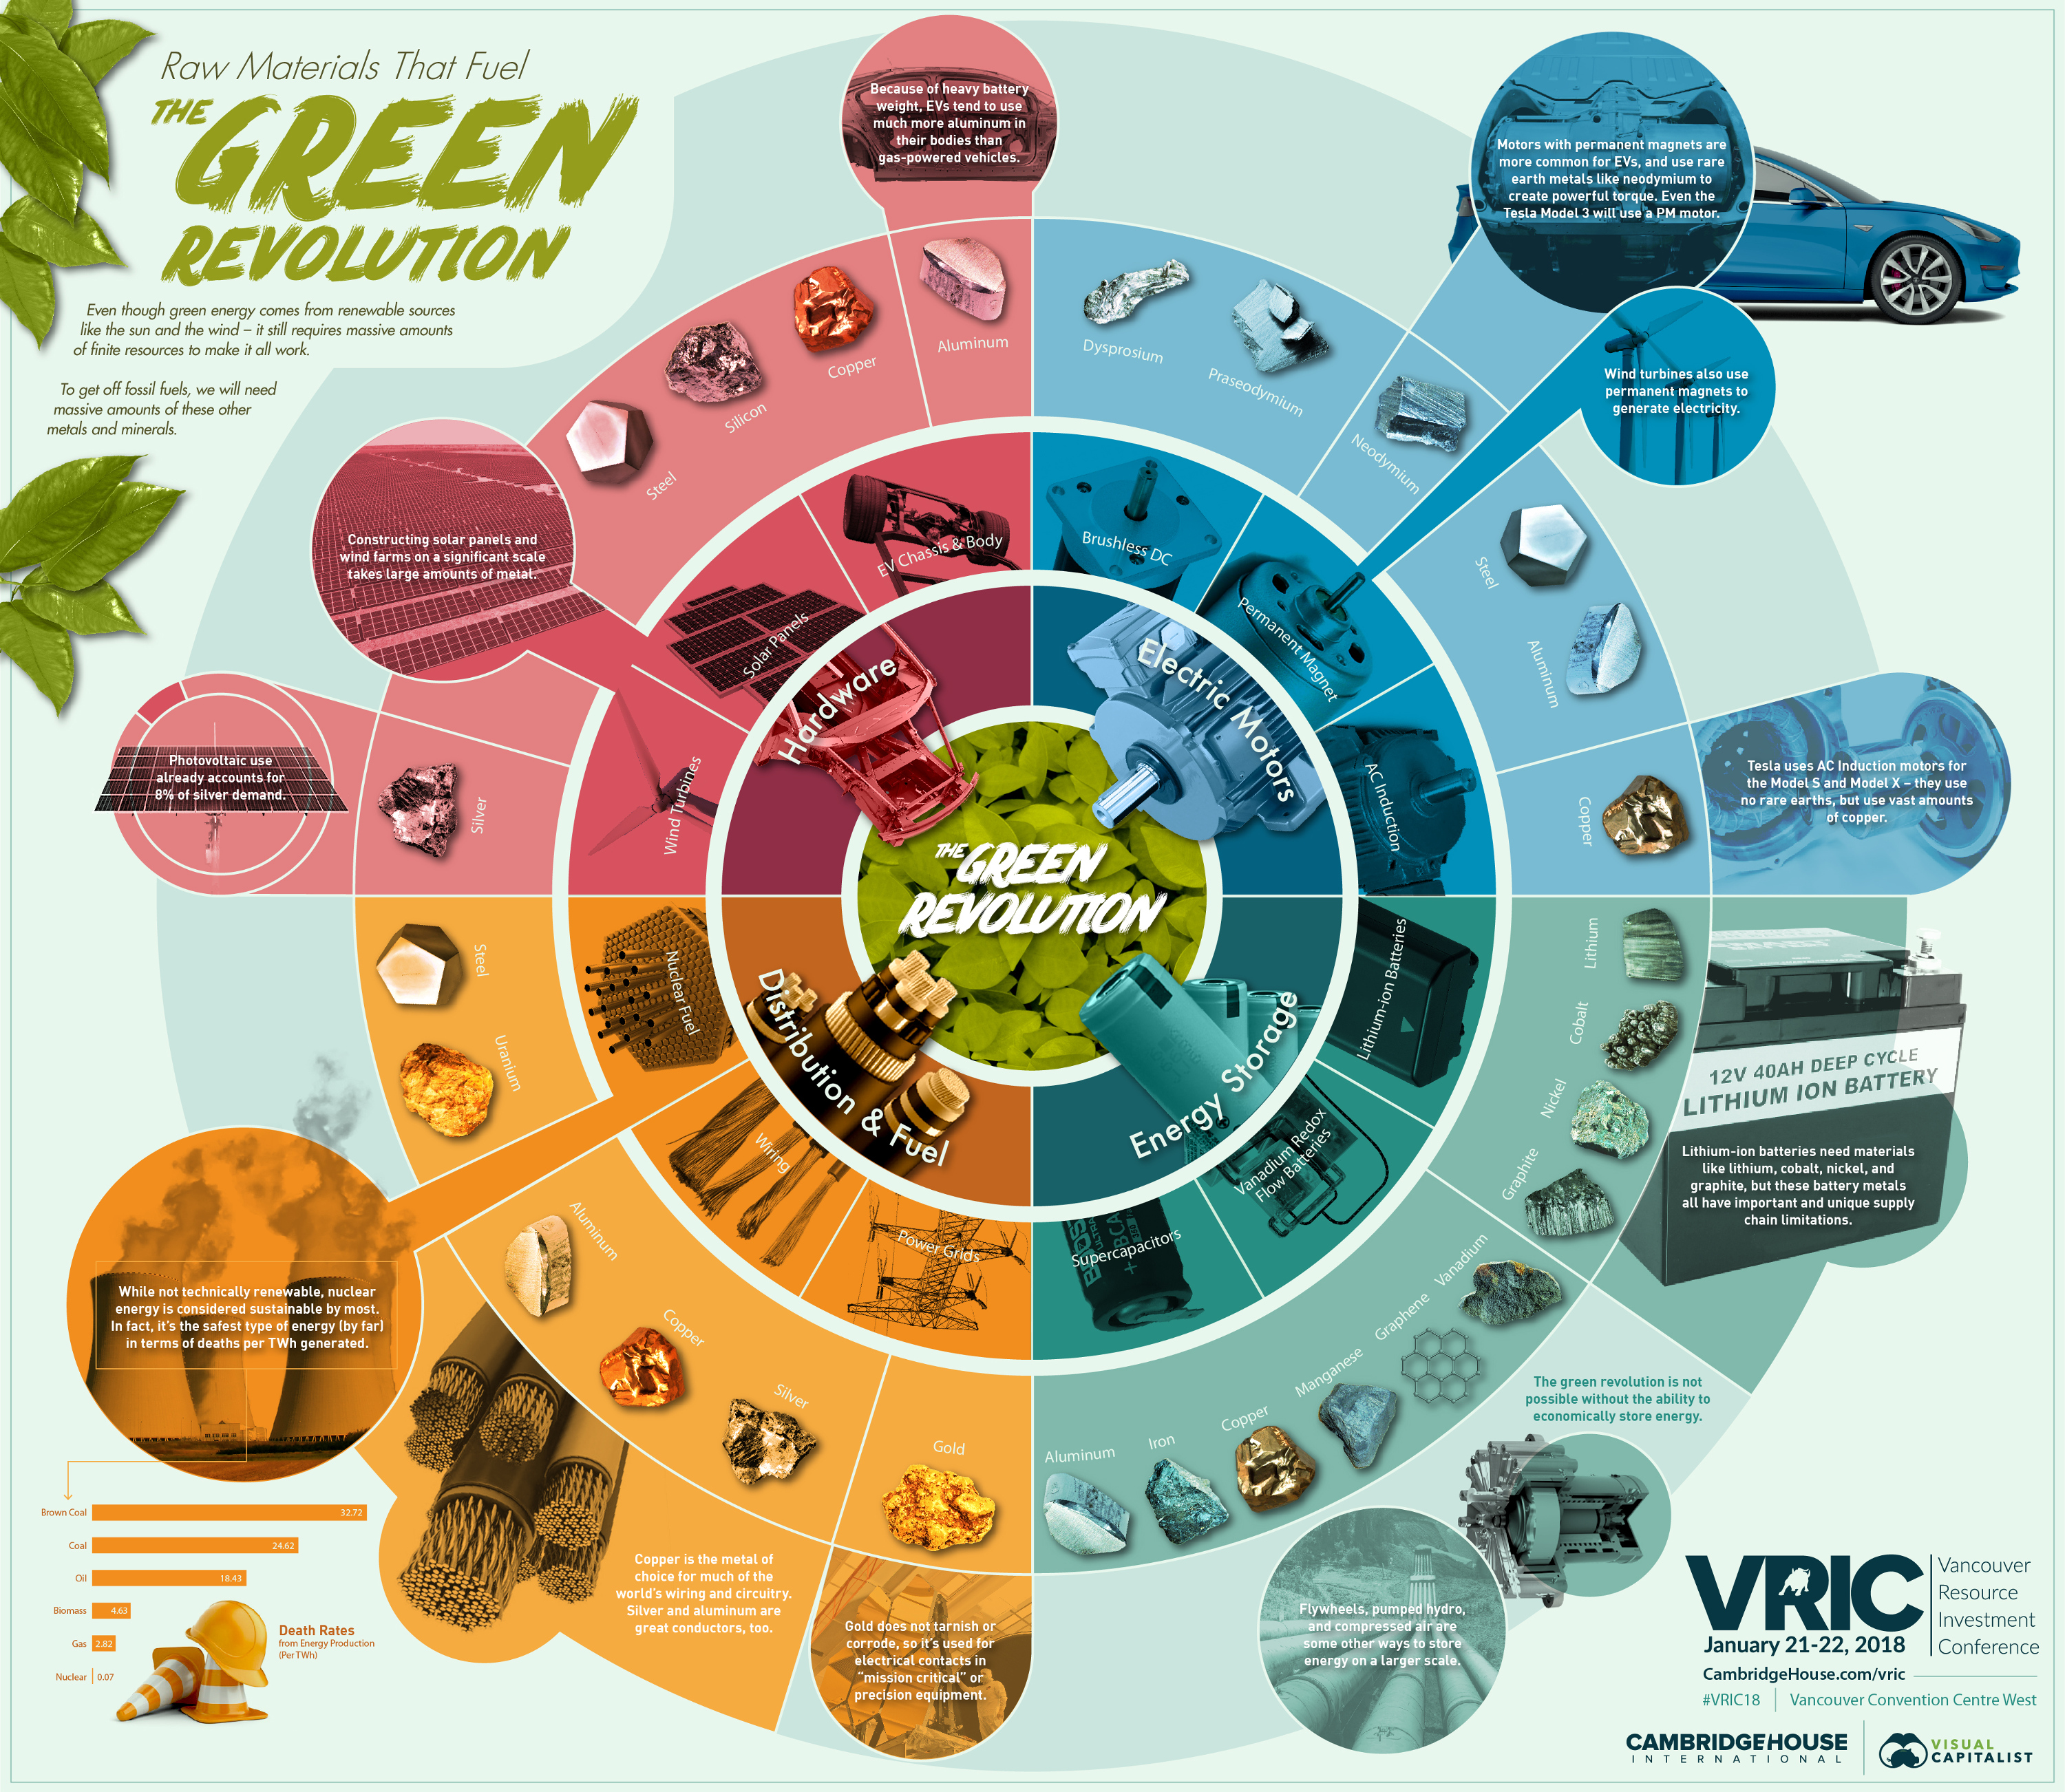 The Raw Materials That Fuel the Green Revolution